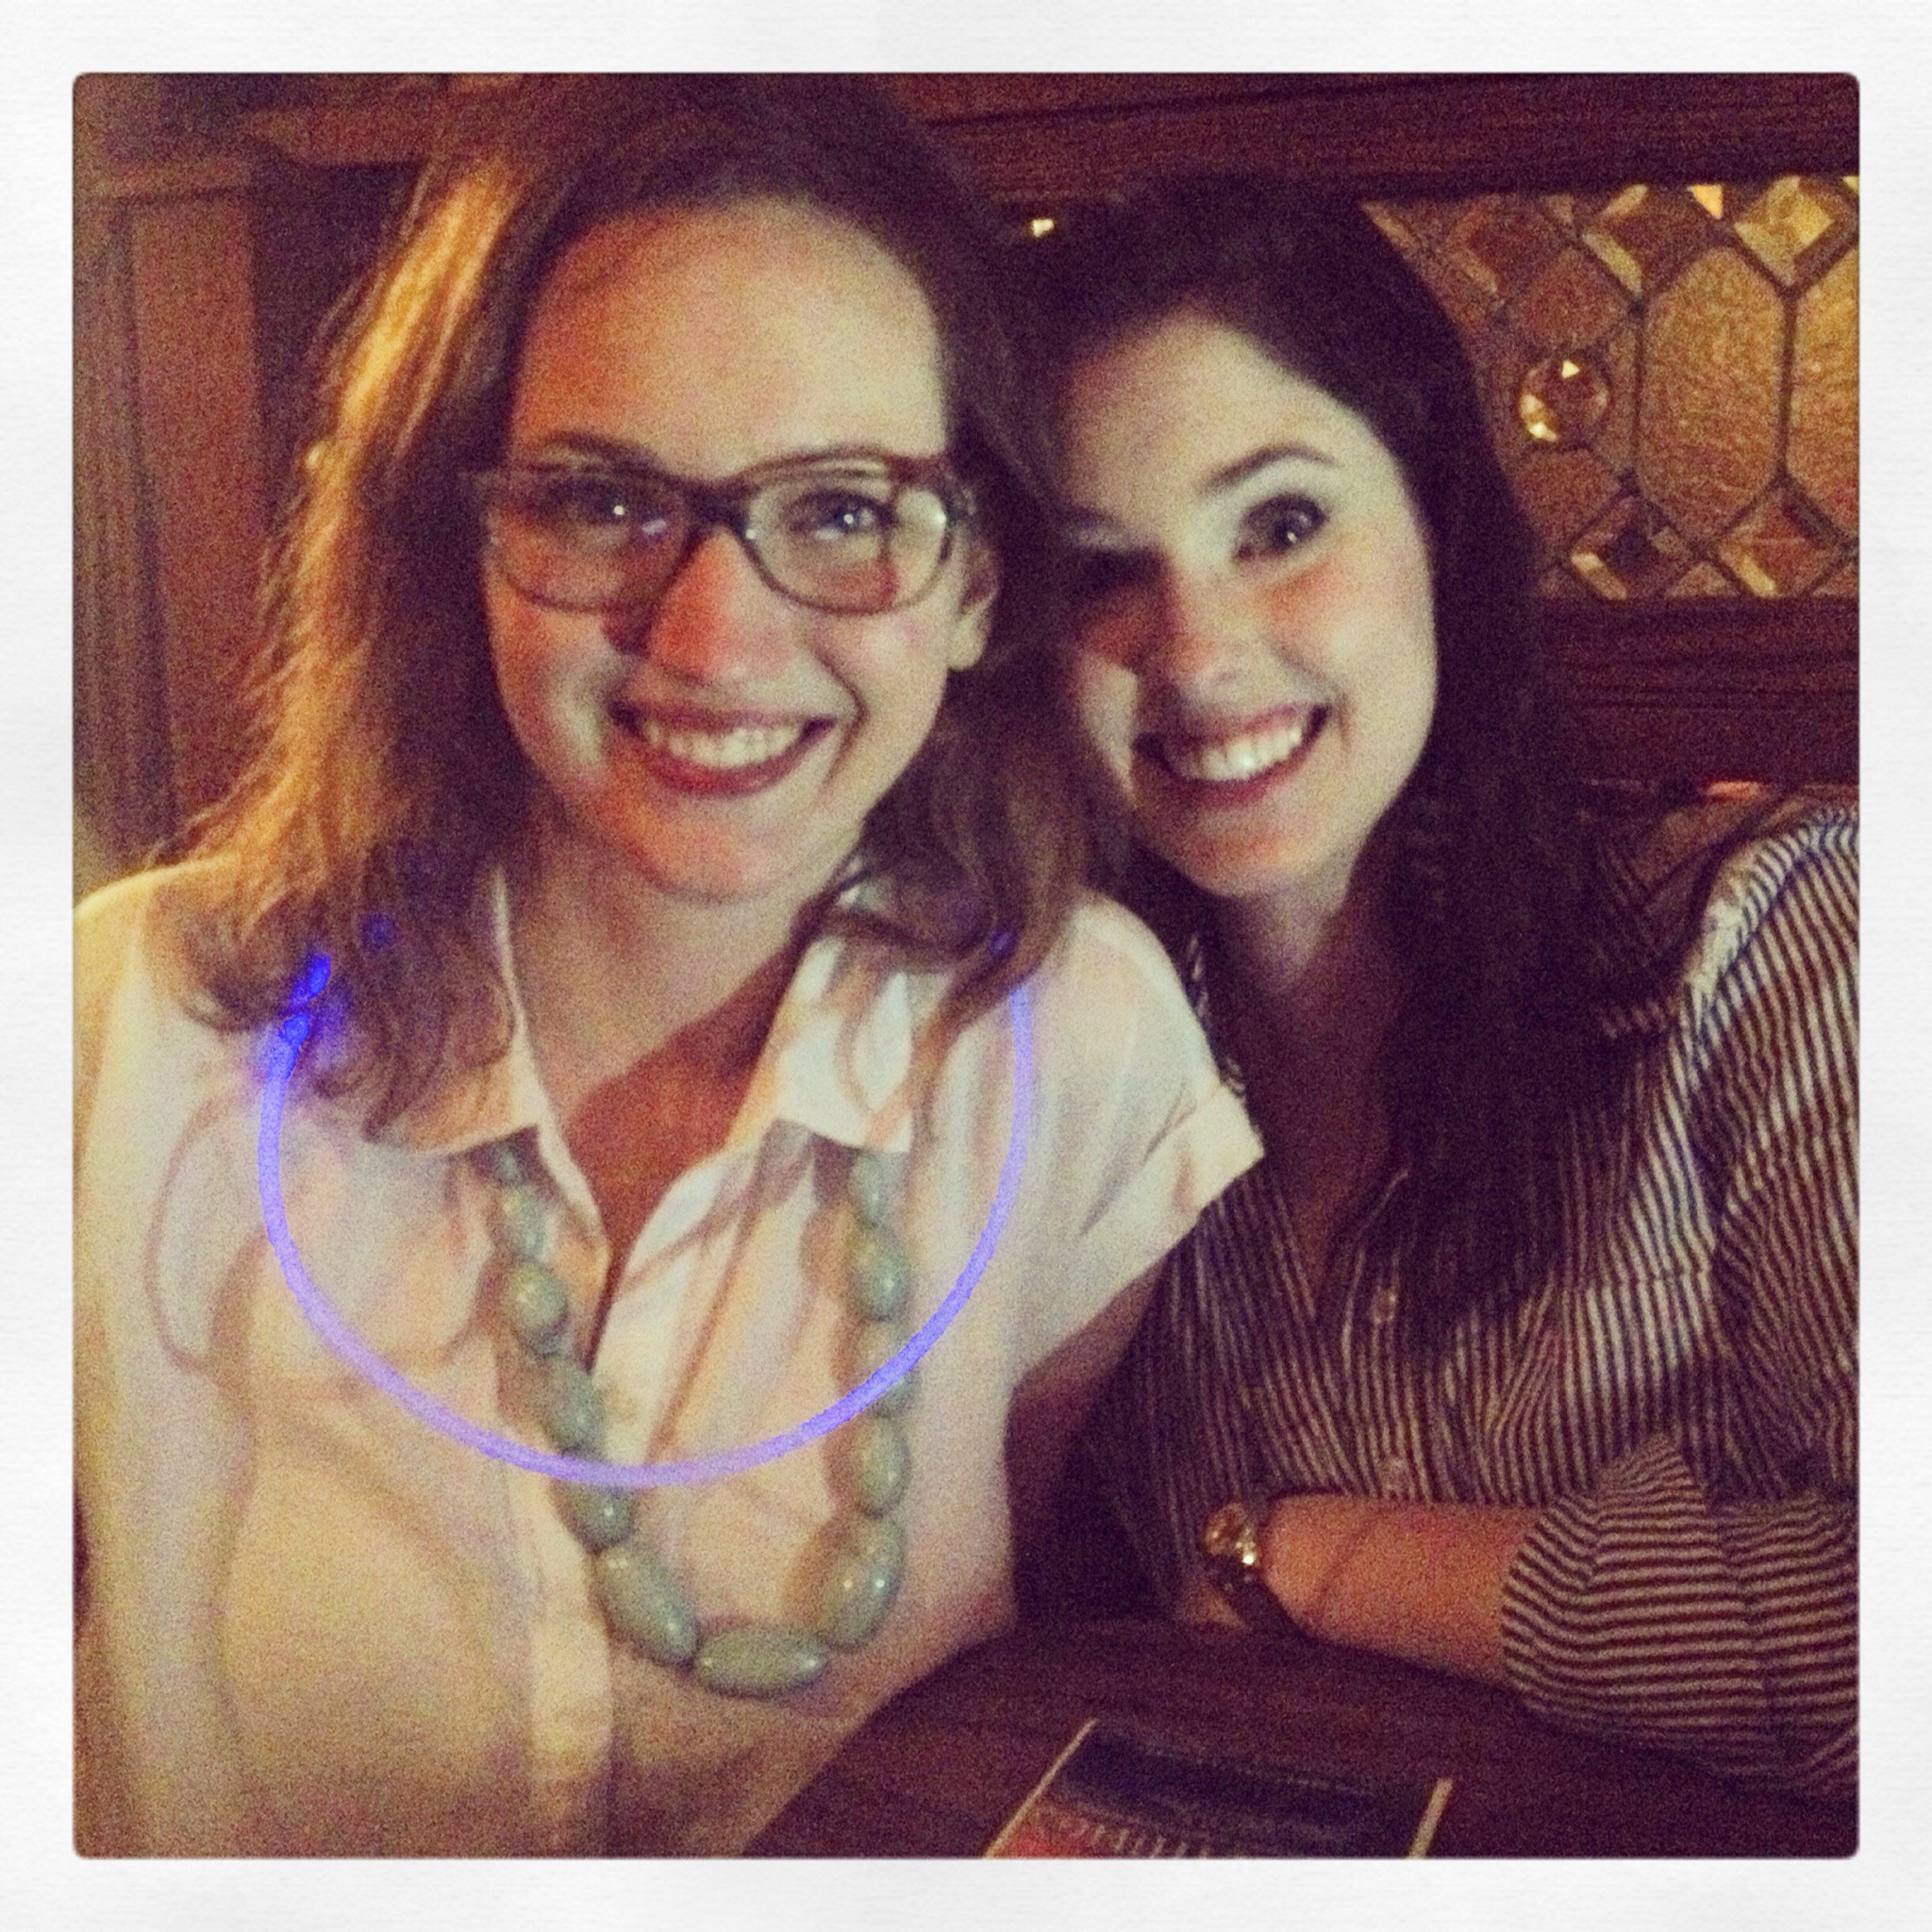 Megan Kelly and Kate Grabau, co-founders of Better Than Shakespeare